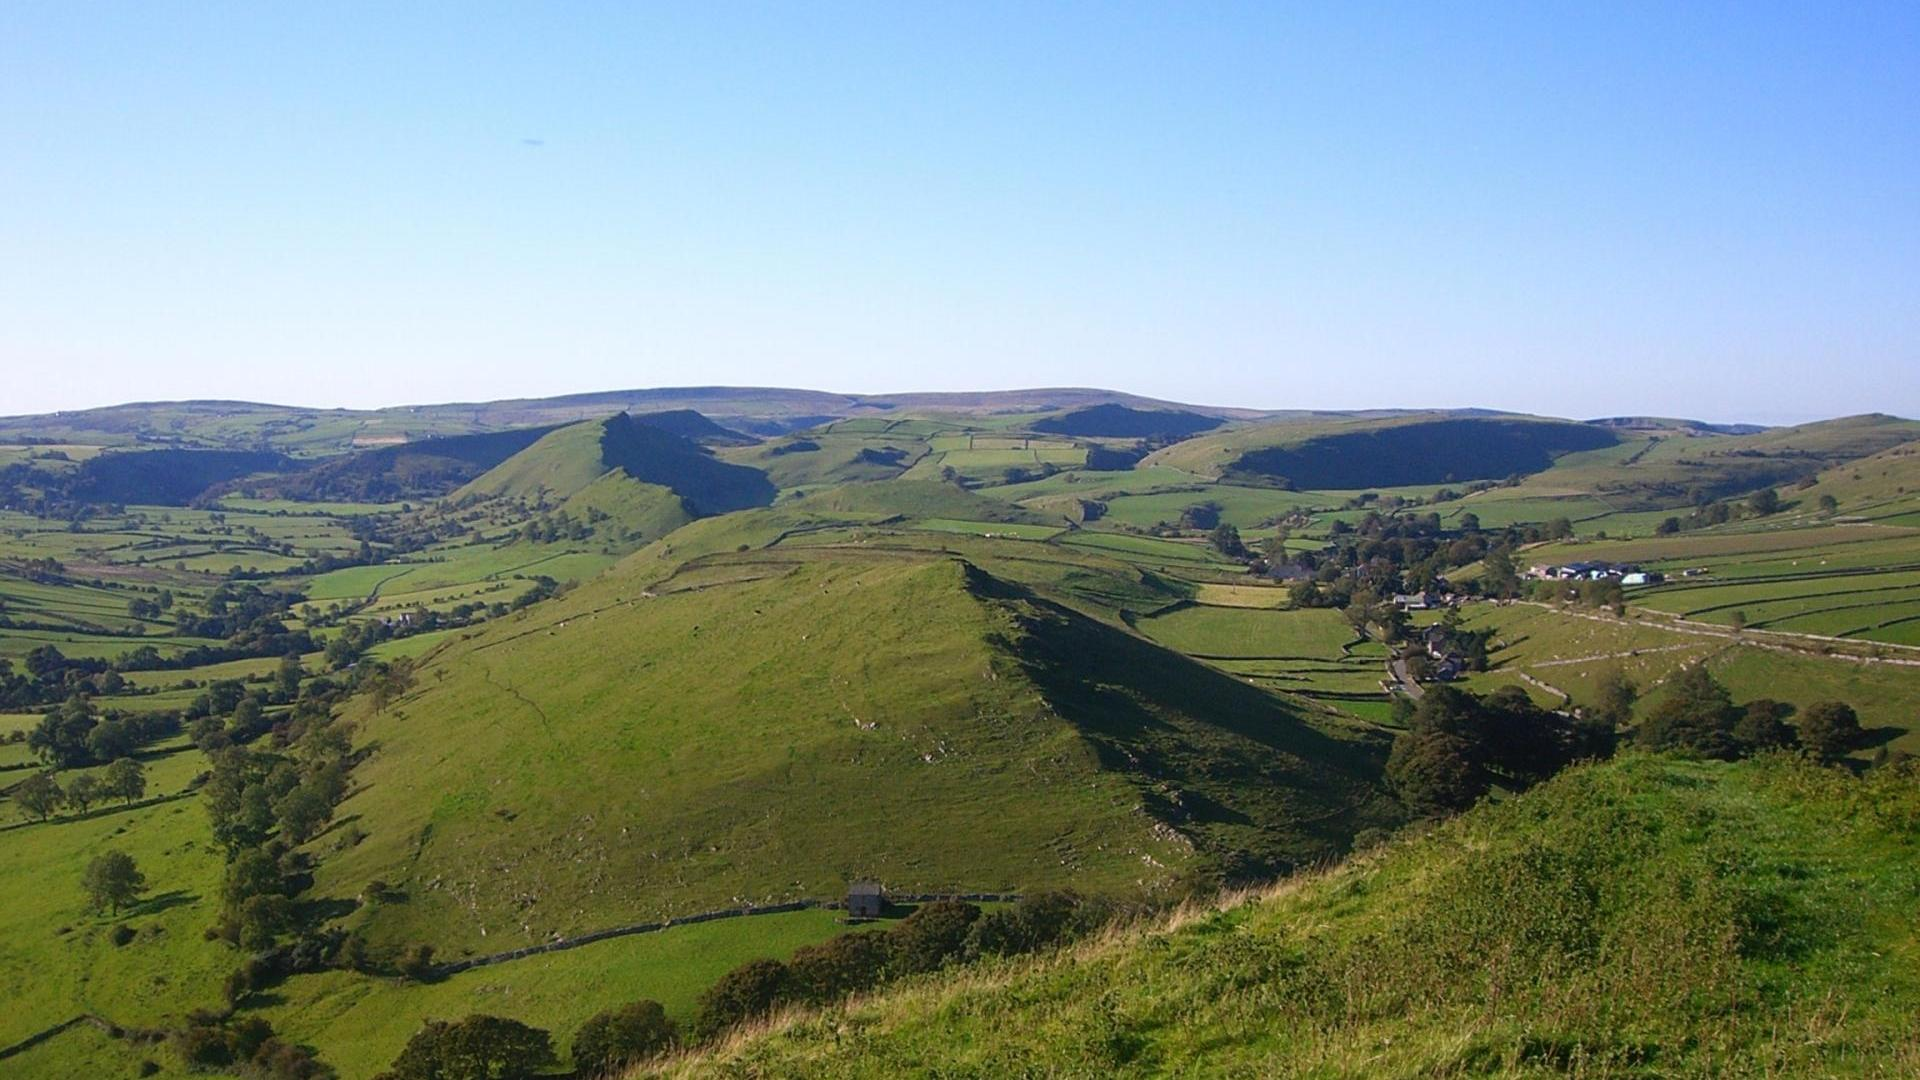 Holiday cottage in Peak District, baby and toddler friendly - DME